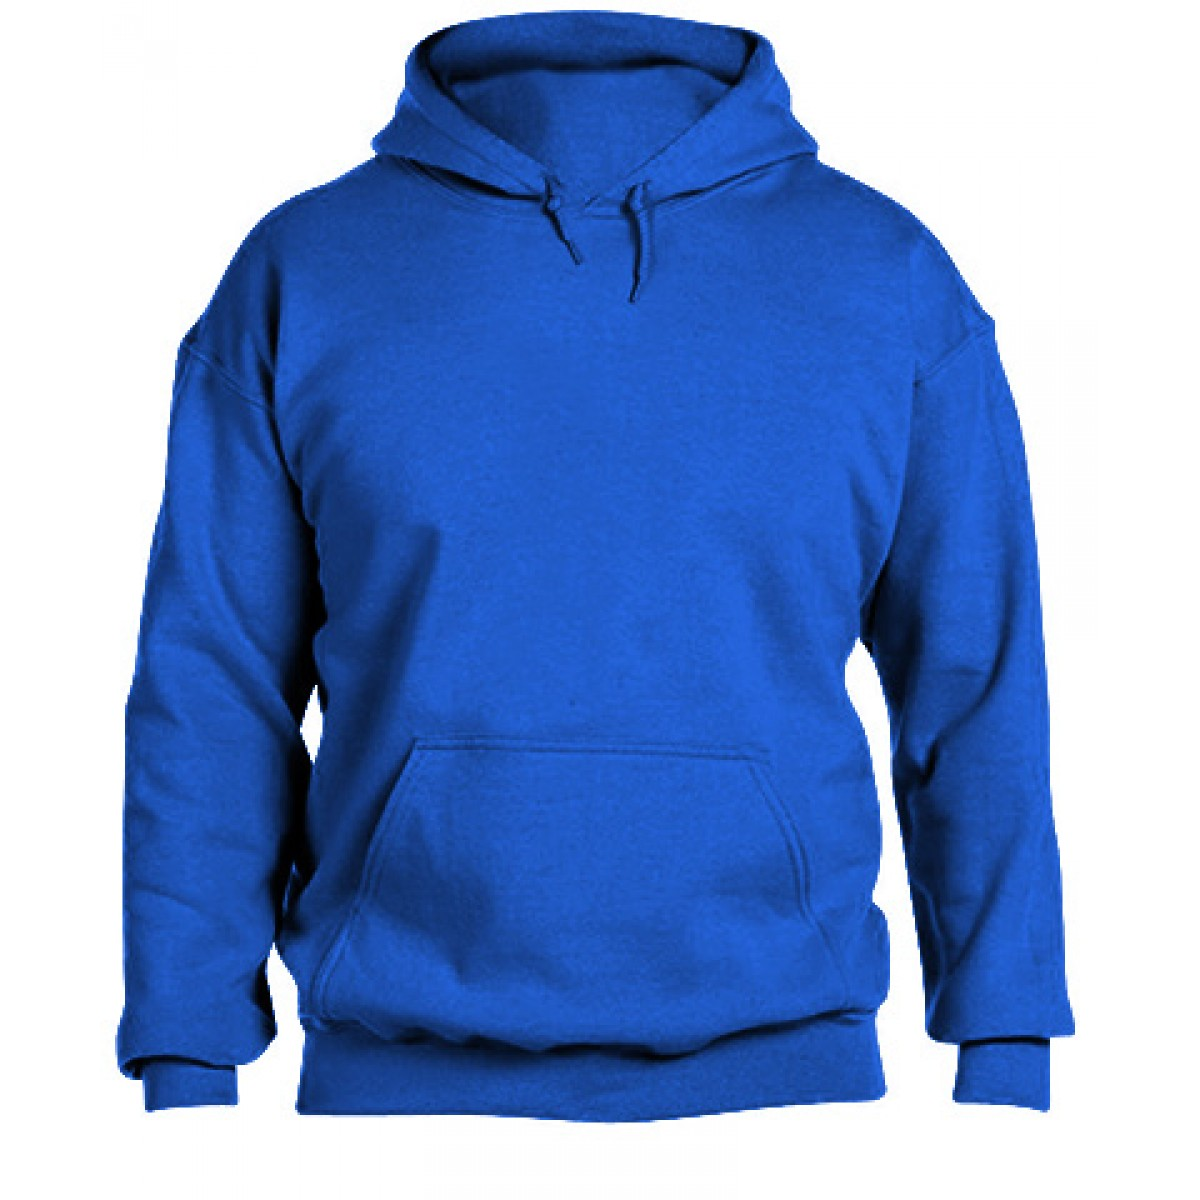 Hooded Sweatshirt 50/50 Heavy Blend-3XL